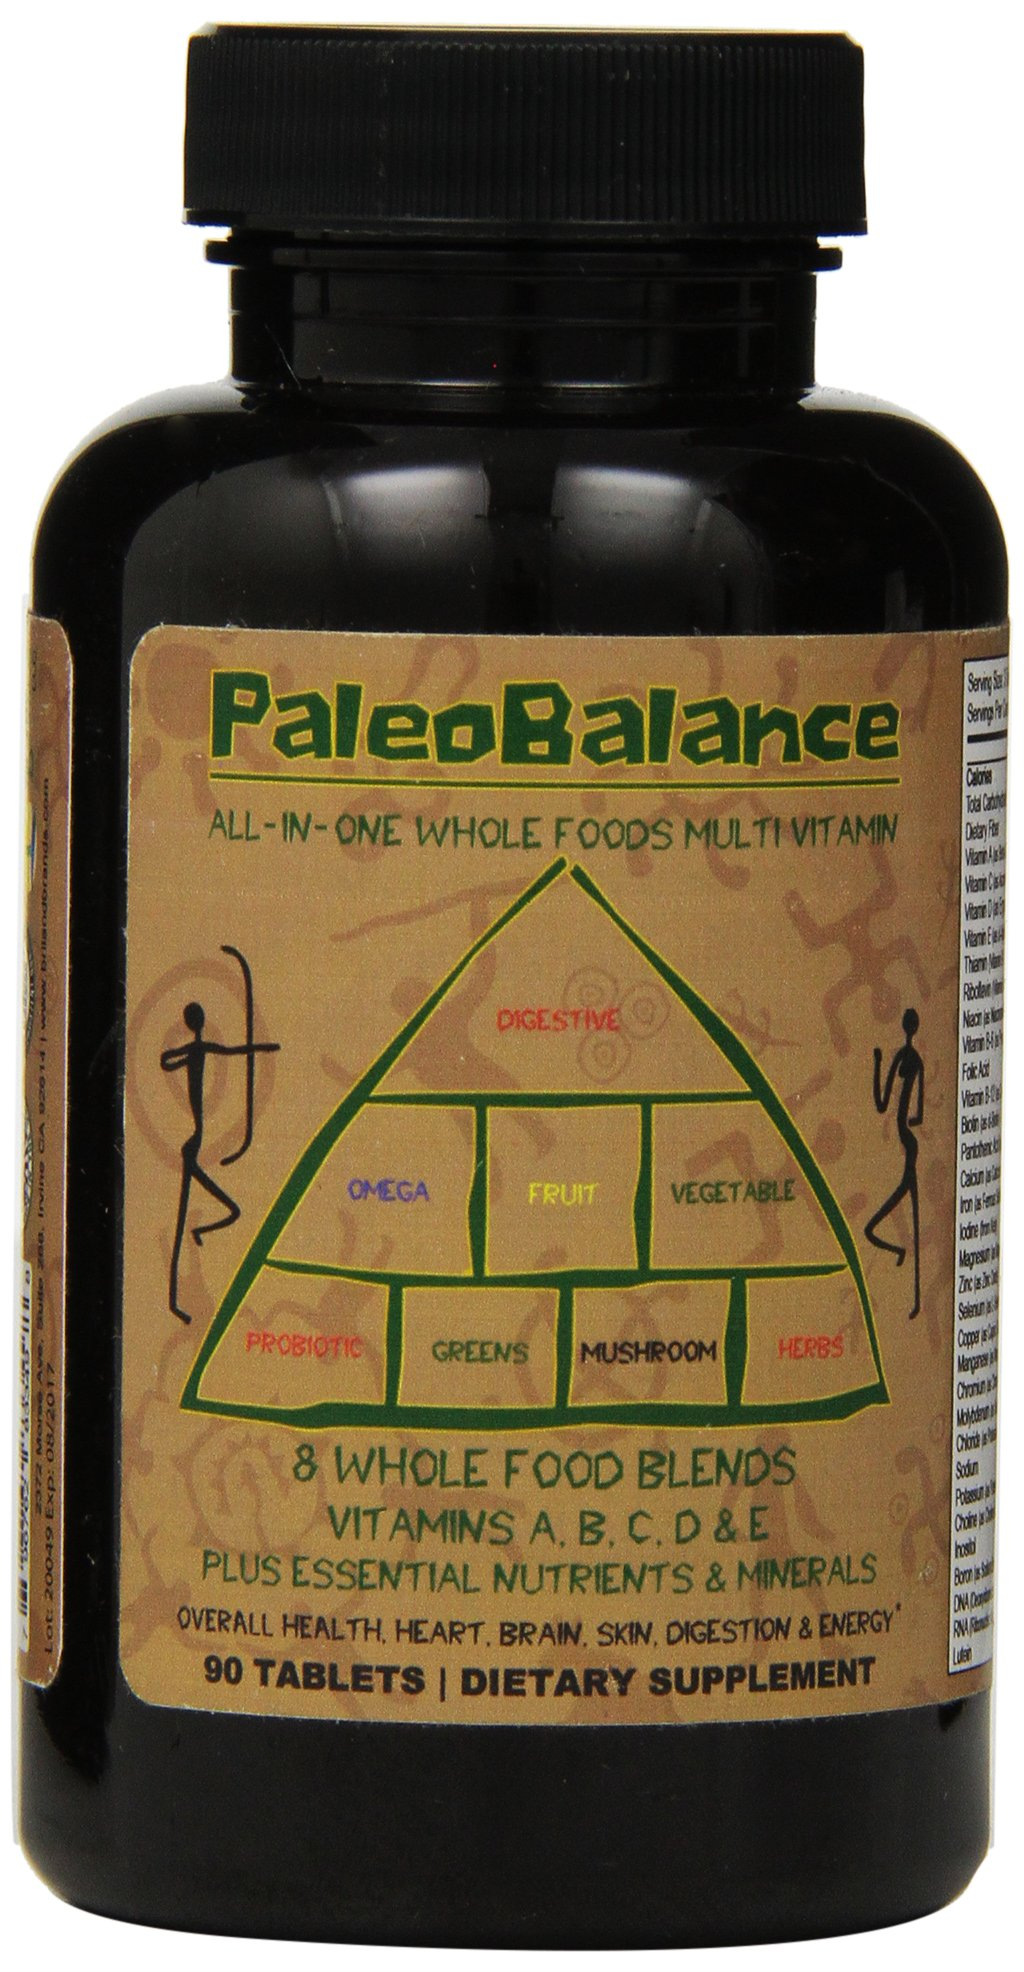 Amazon.com: PaleoBalance All-In-One Whole Foods Multivitamin ...